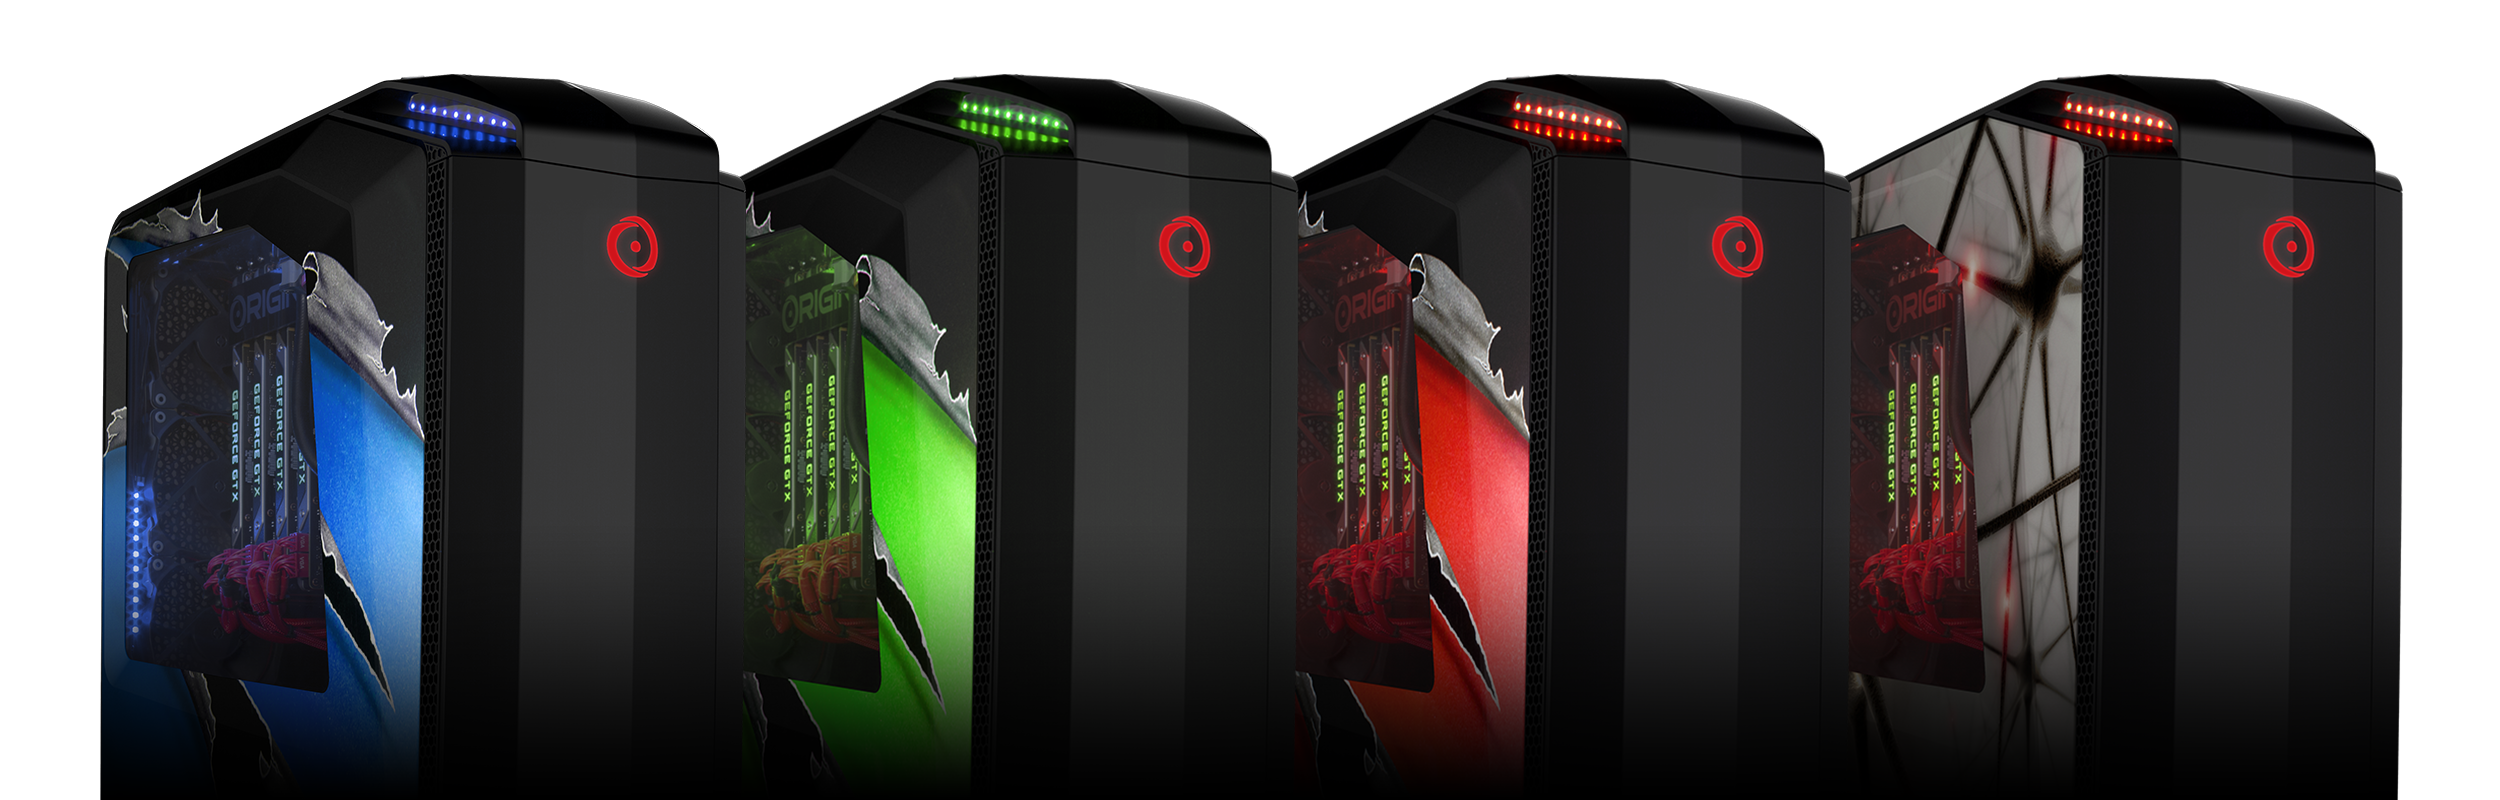 Millennium Pro Hpc Workstation Mid Tower Origin Pc Light Laser Led Gt Circuits Traffic Lights For Games With Line Up Of All Available Case Colors